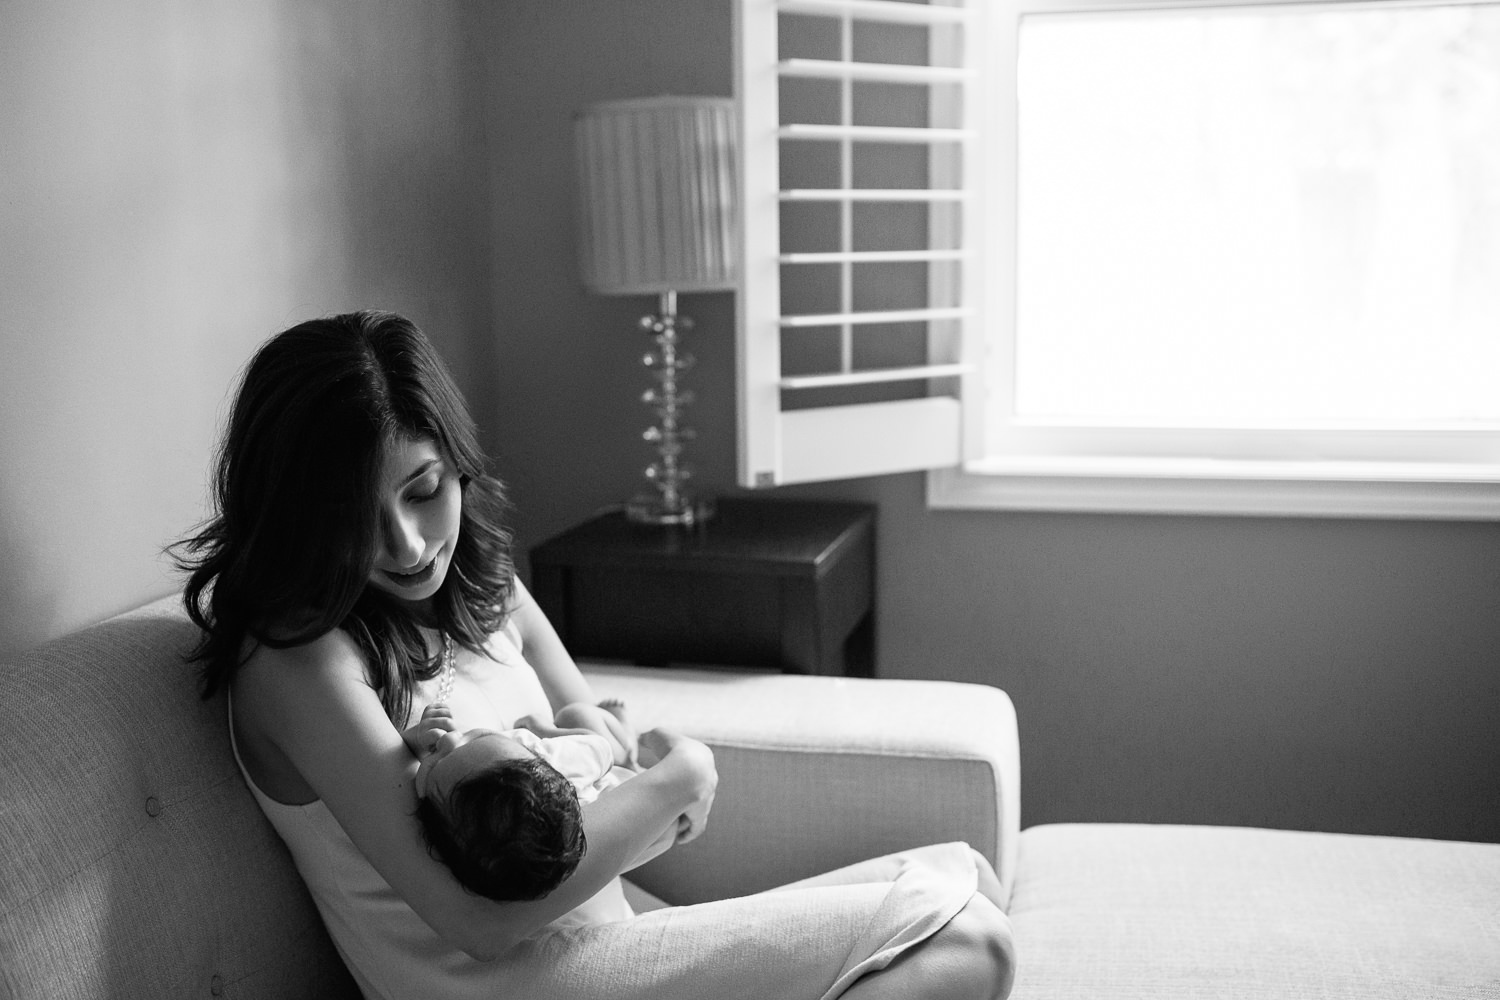 new mom sitting on couch snuggling 1 month old baby boy with dark hair in her arms - GTA Lifestyle Photos